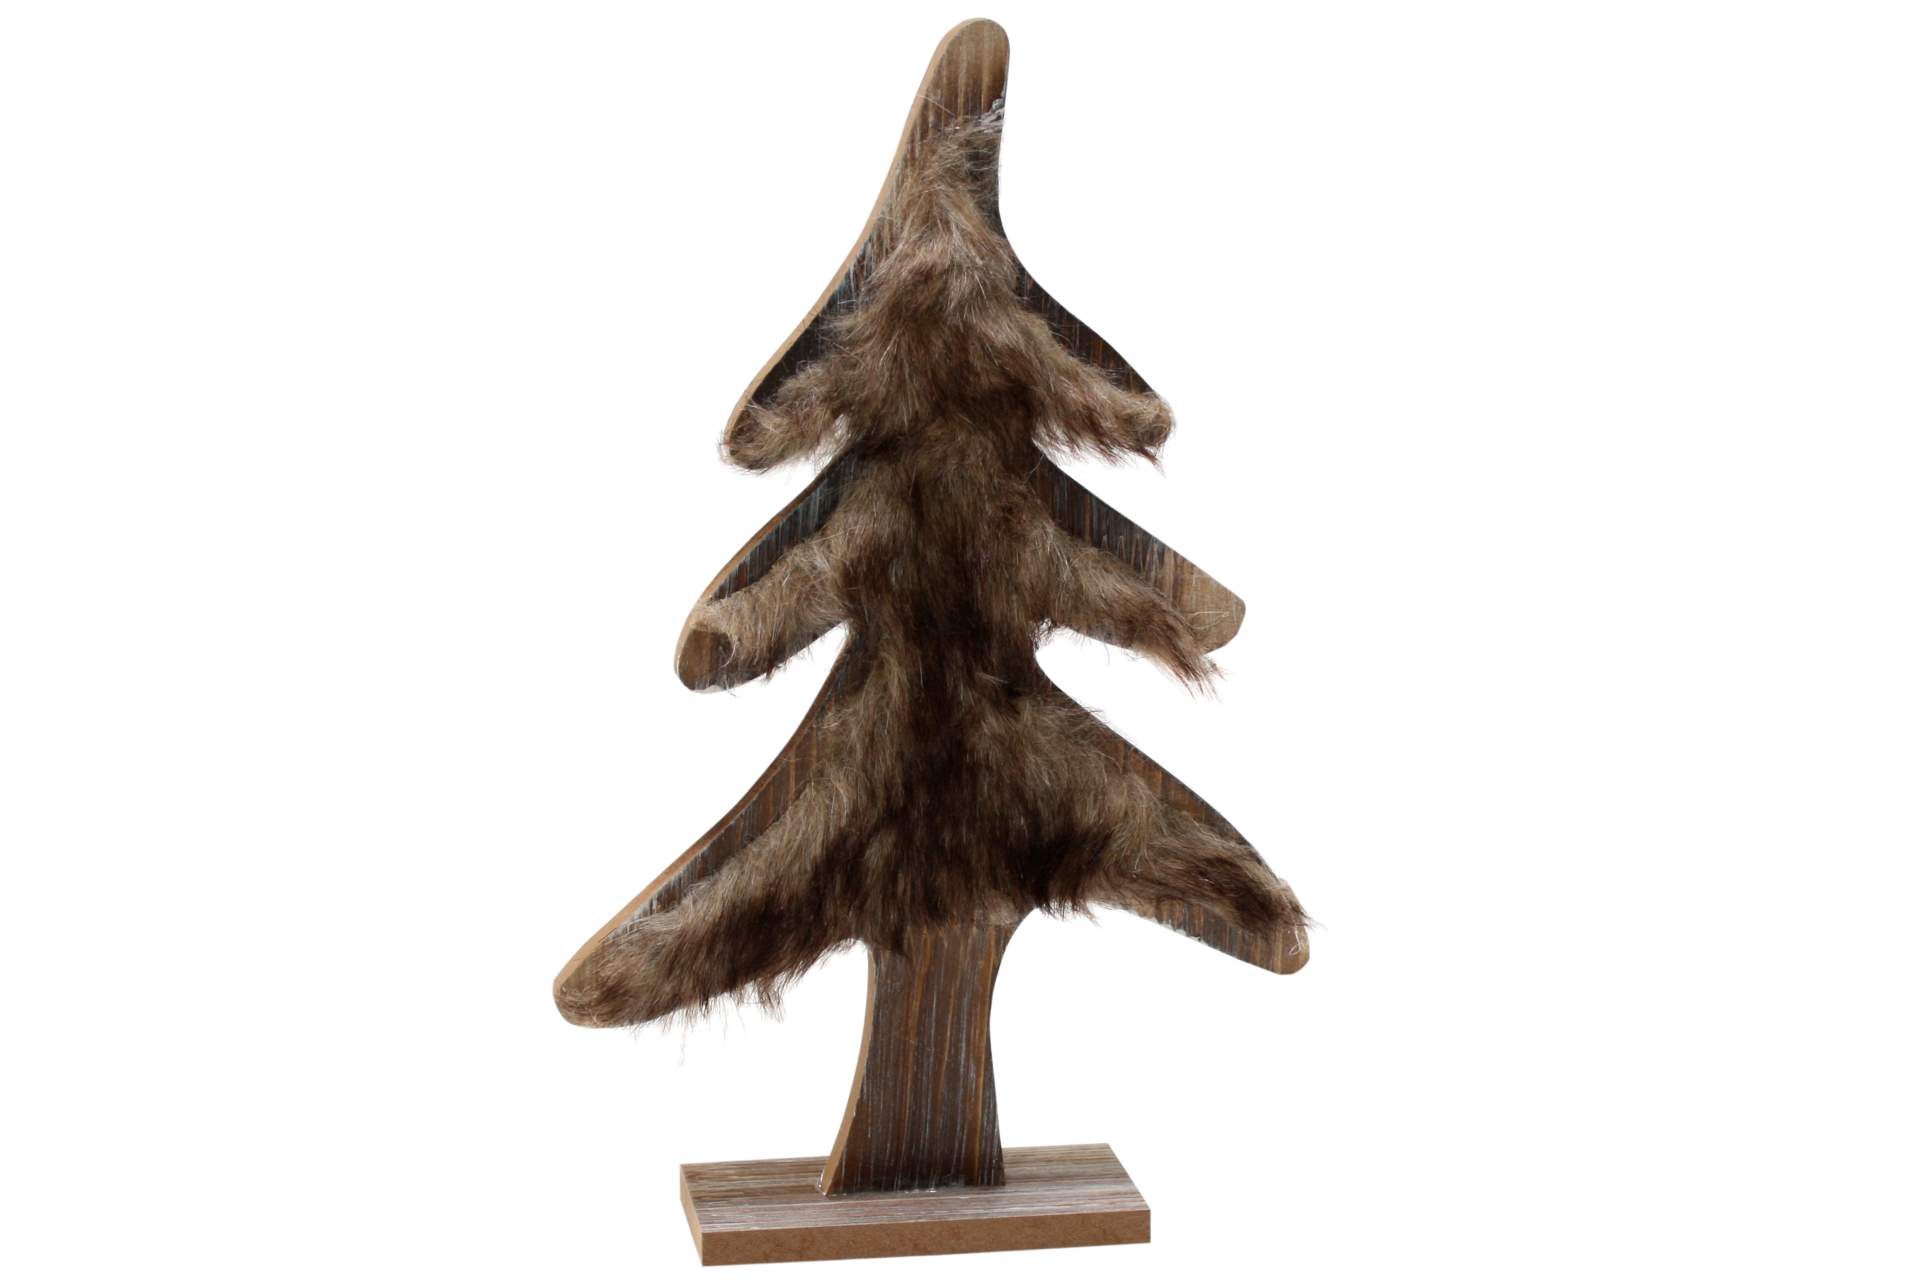 tannenbaum mit kuschelfell 29 cm braun xmas weihnachten holzbaum tanne holz deko ebay. Black Bedroom Furniture Sets. Home Design Ideas